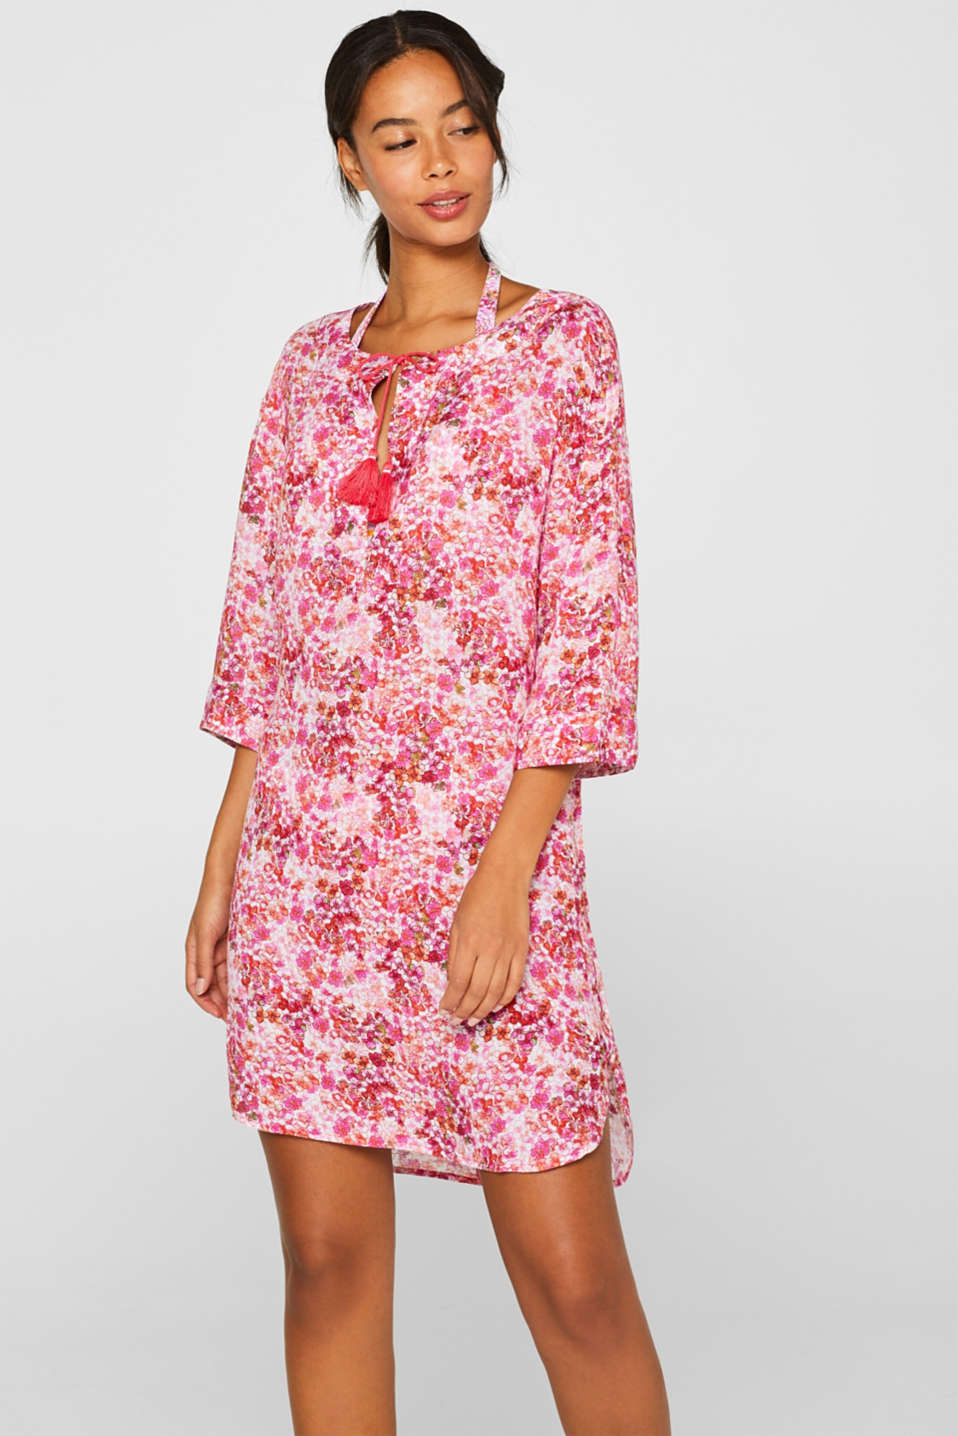 Esprit - Tunic dress with a floral print